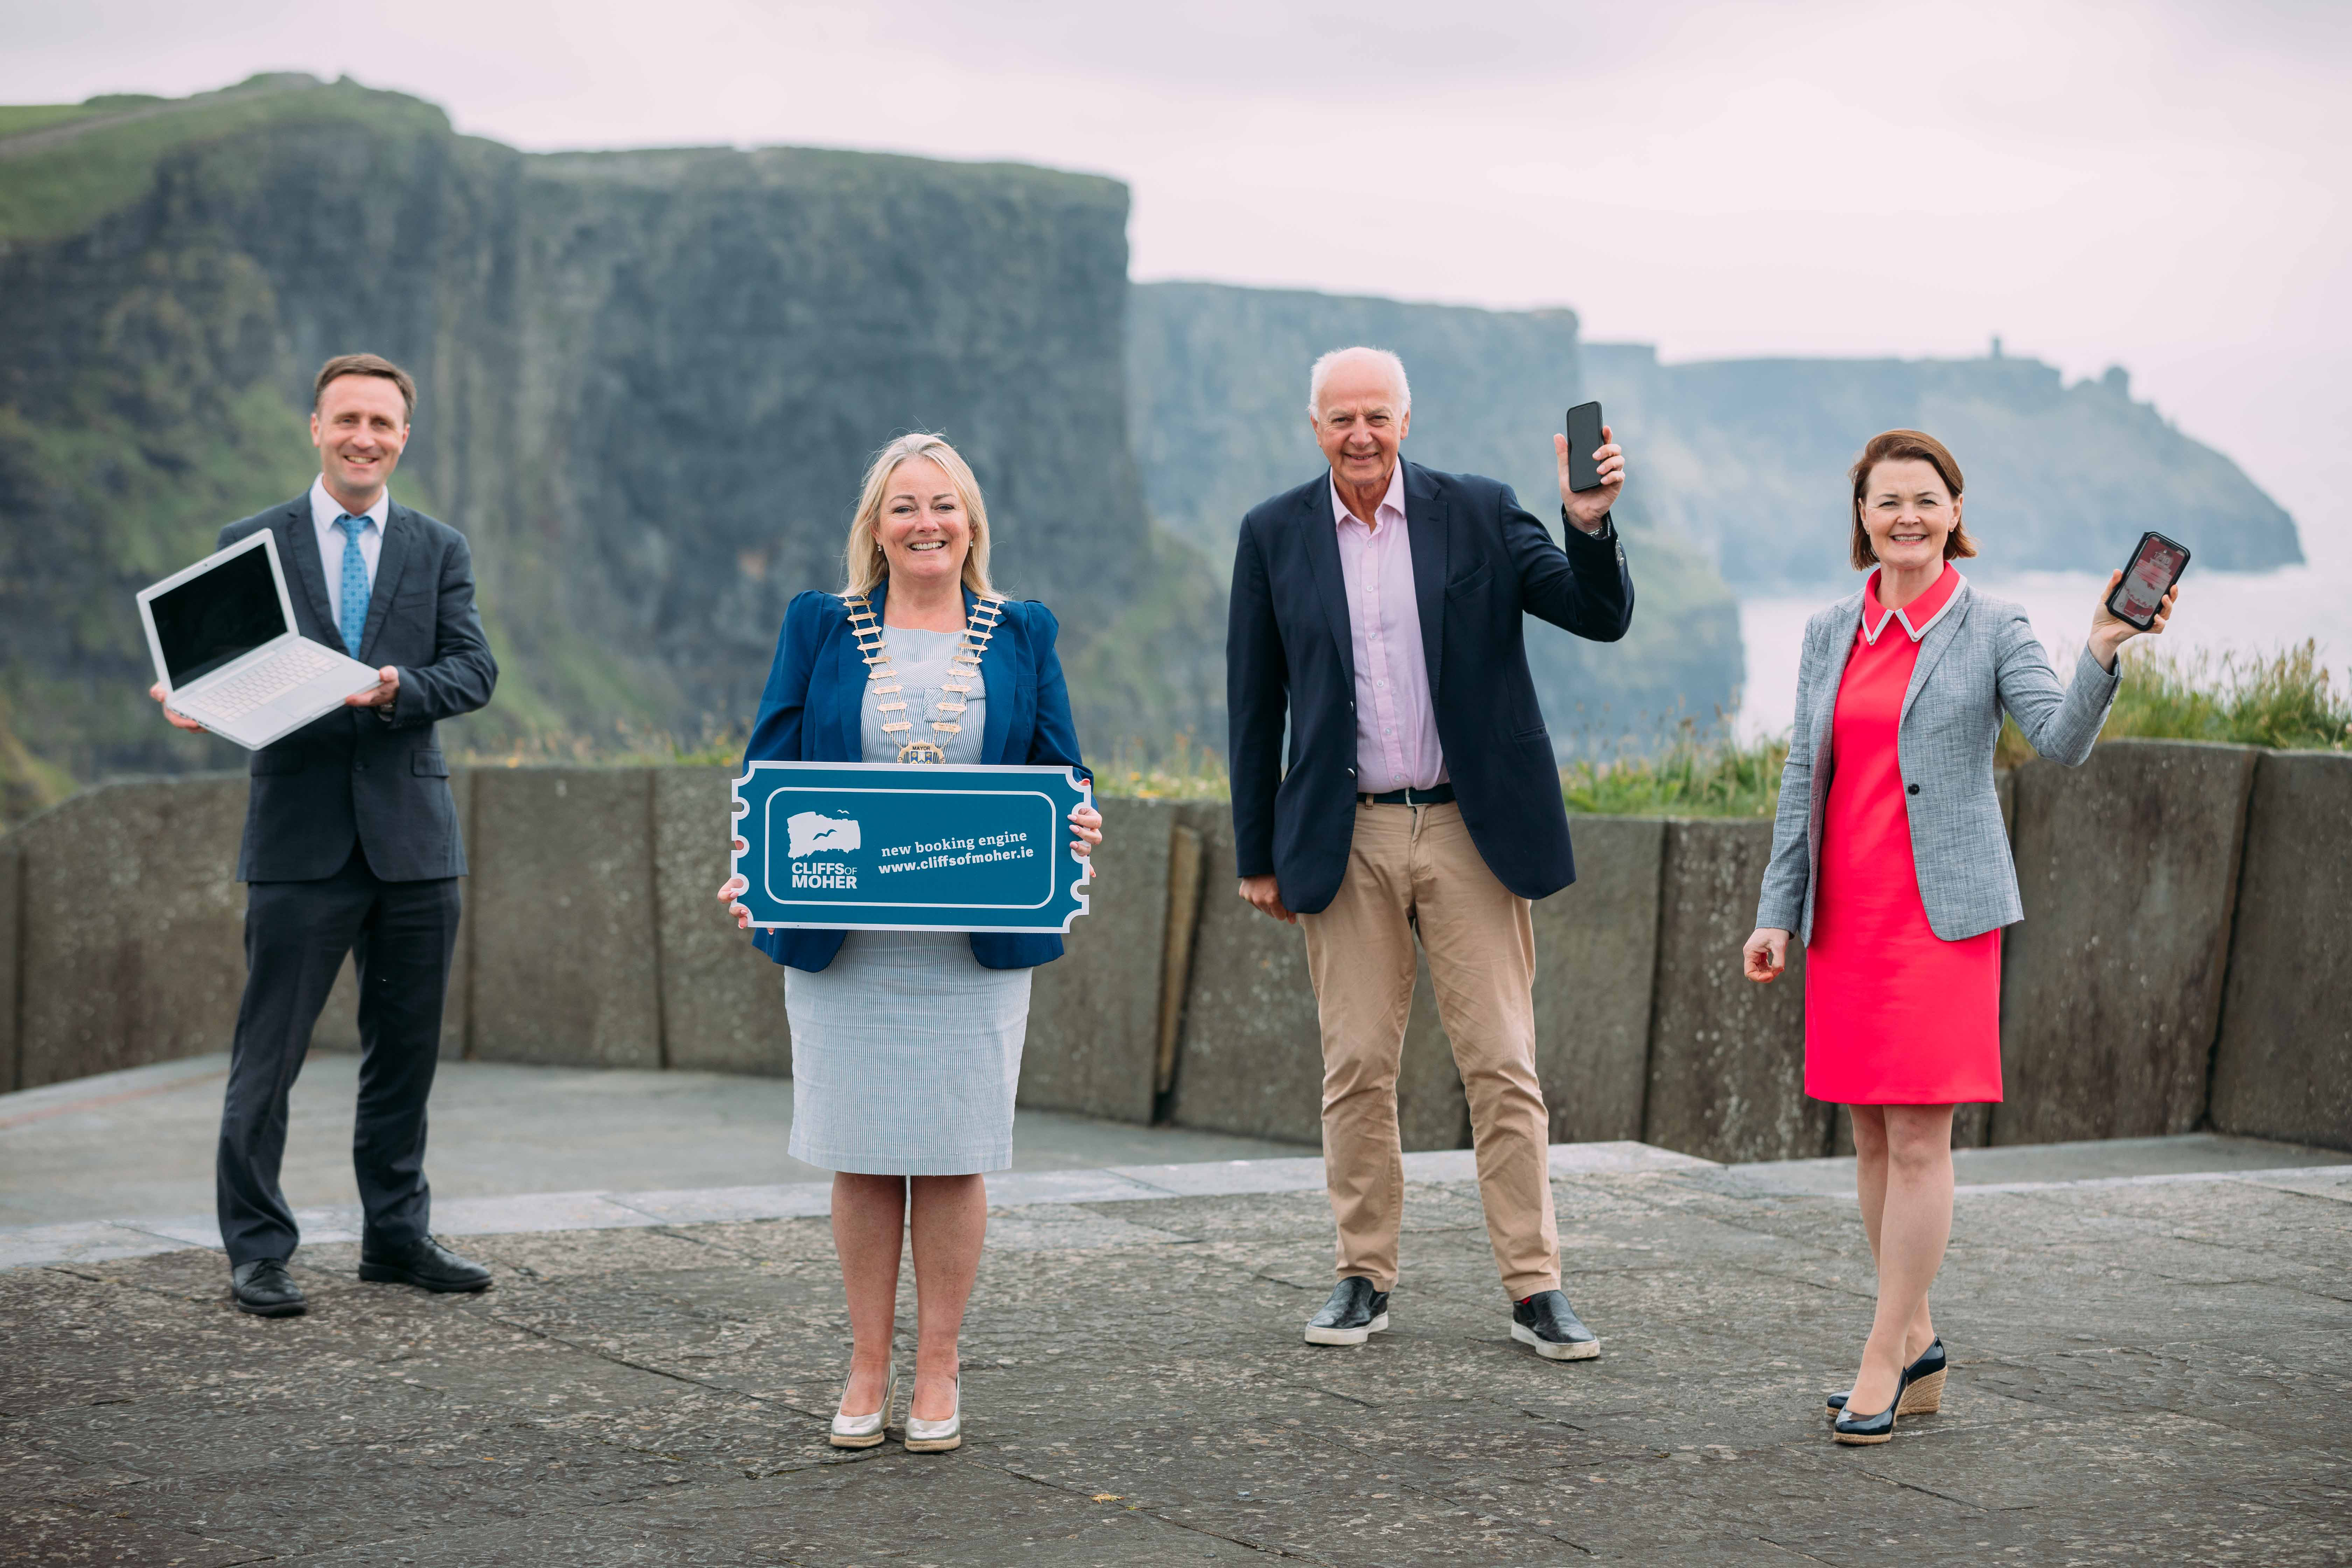 Pictured at the launch of the new online booking system for the Cliffs of Moher are (left to right) Leonard Cleary, Director of Services, Clare County Council; Cllr. Mary Howard, Cathaoirleach of Clare County Council; Bobby Kerr, Chairperson of the Board of the Cliffs of Moher Centre Ltd.; and Geraldine Enright, Director of the Cliffs of Moher Visitor Experience. Photo Eamon Ward